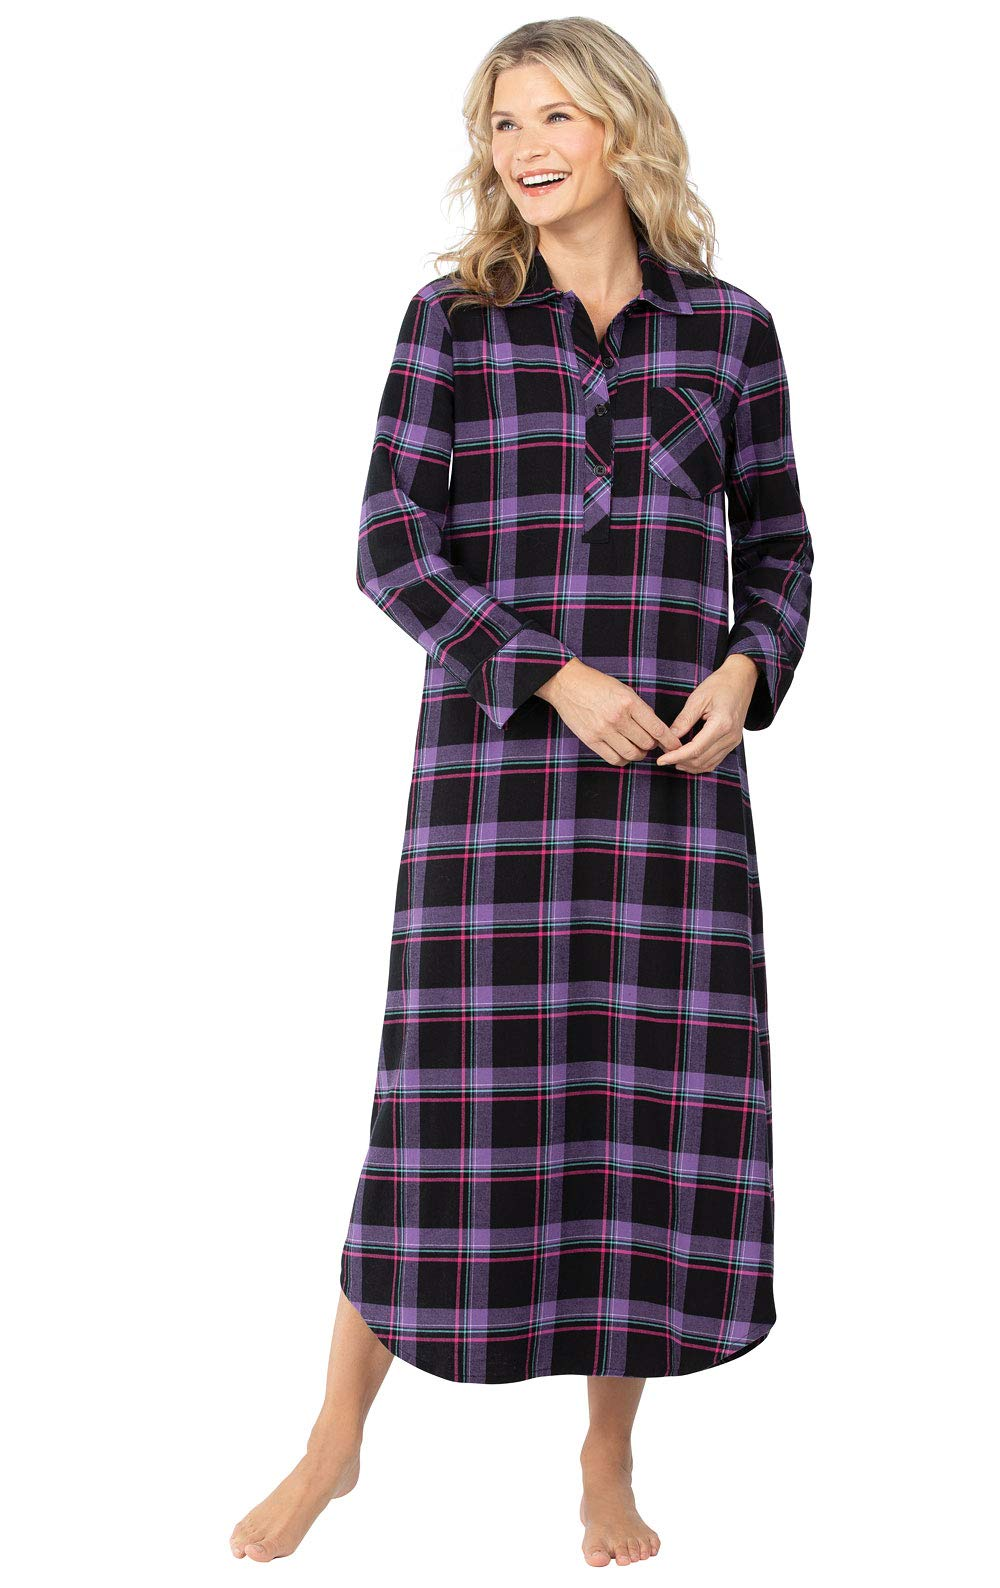 PajamaGram Women's Flannel Nightgown Plaid - Cotton Flannel Nightgown Womens